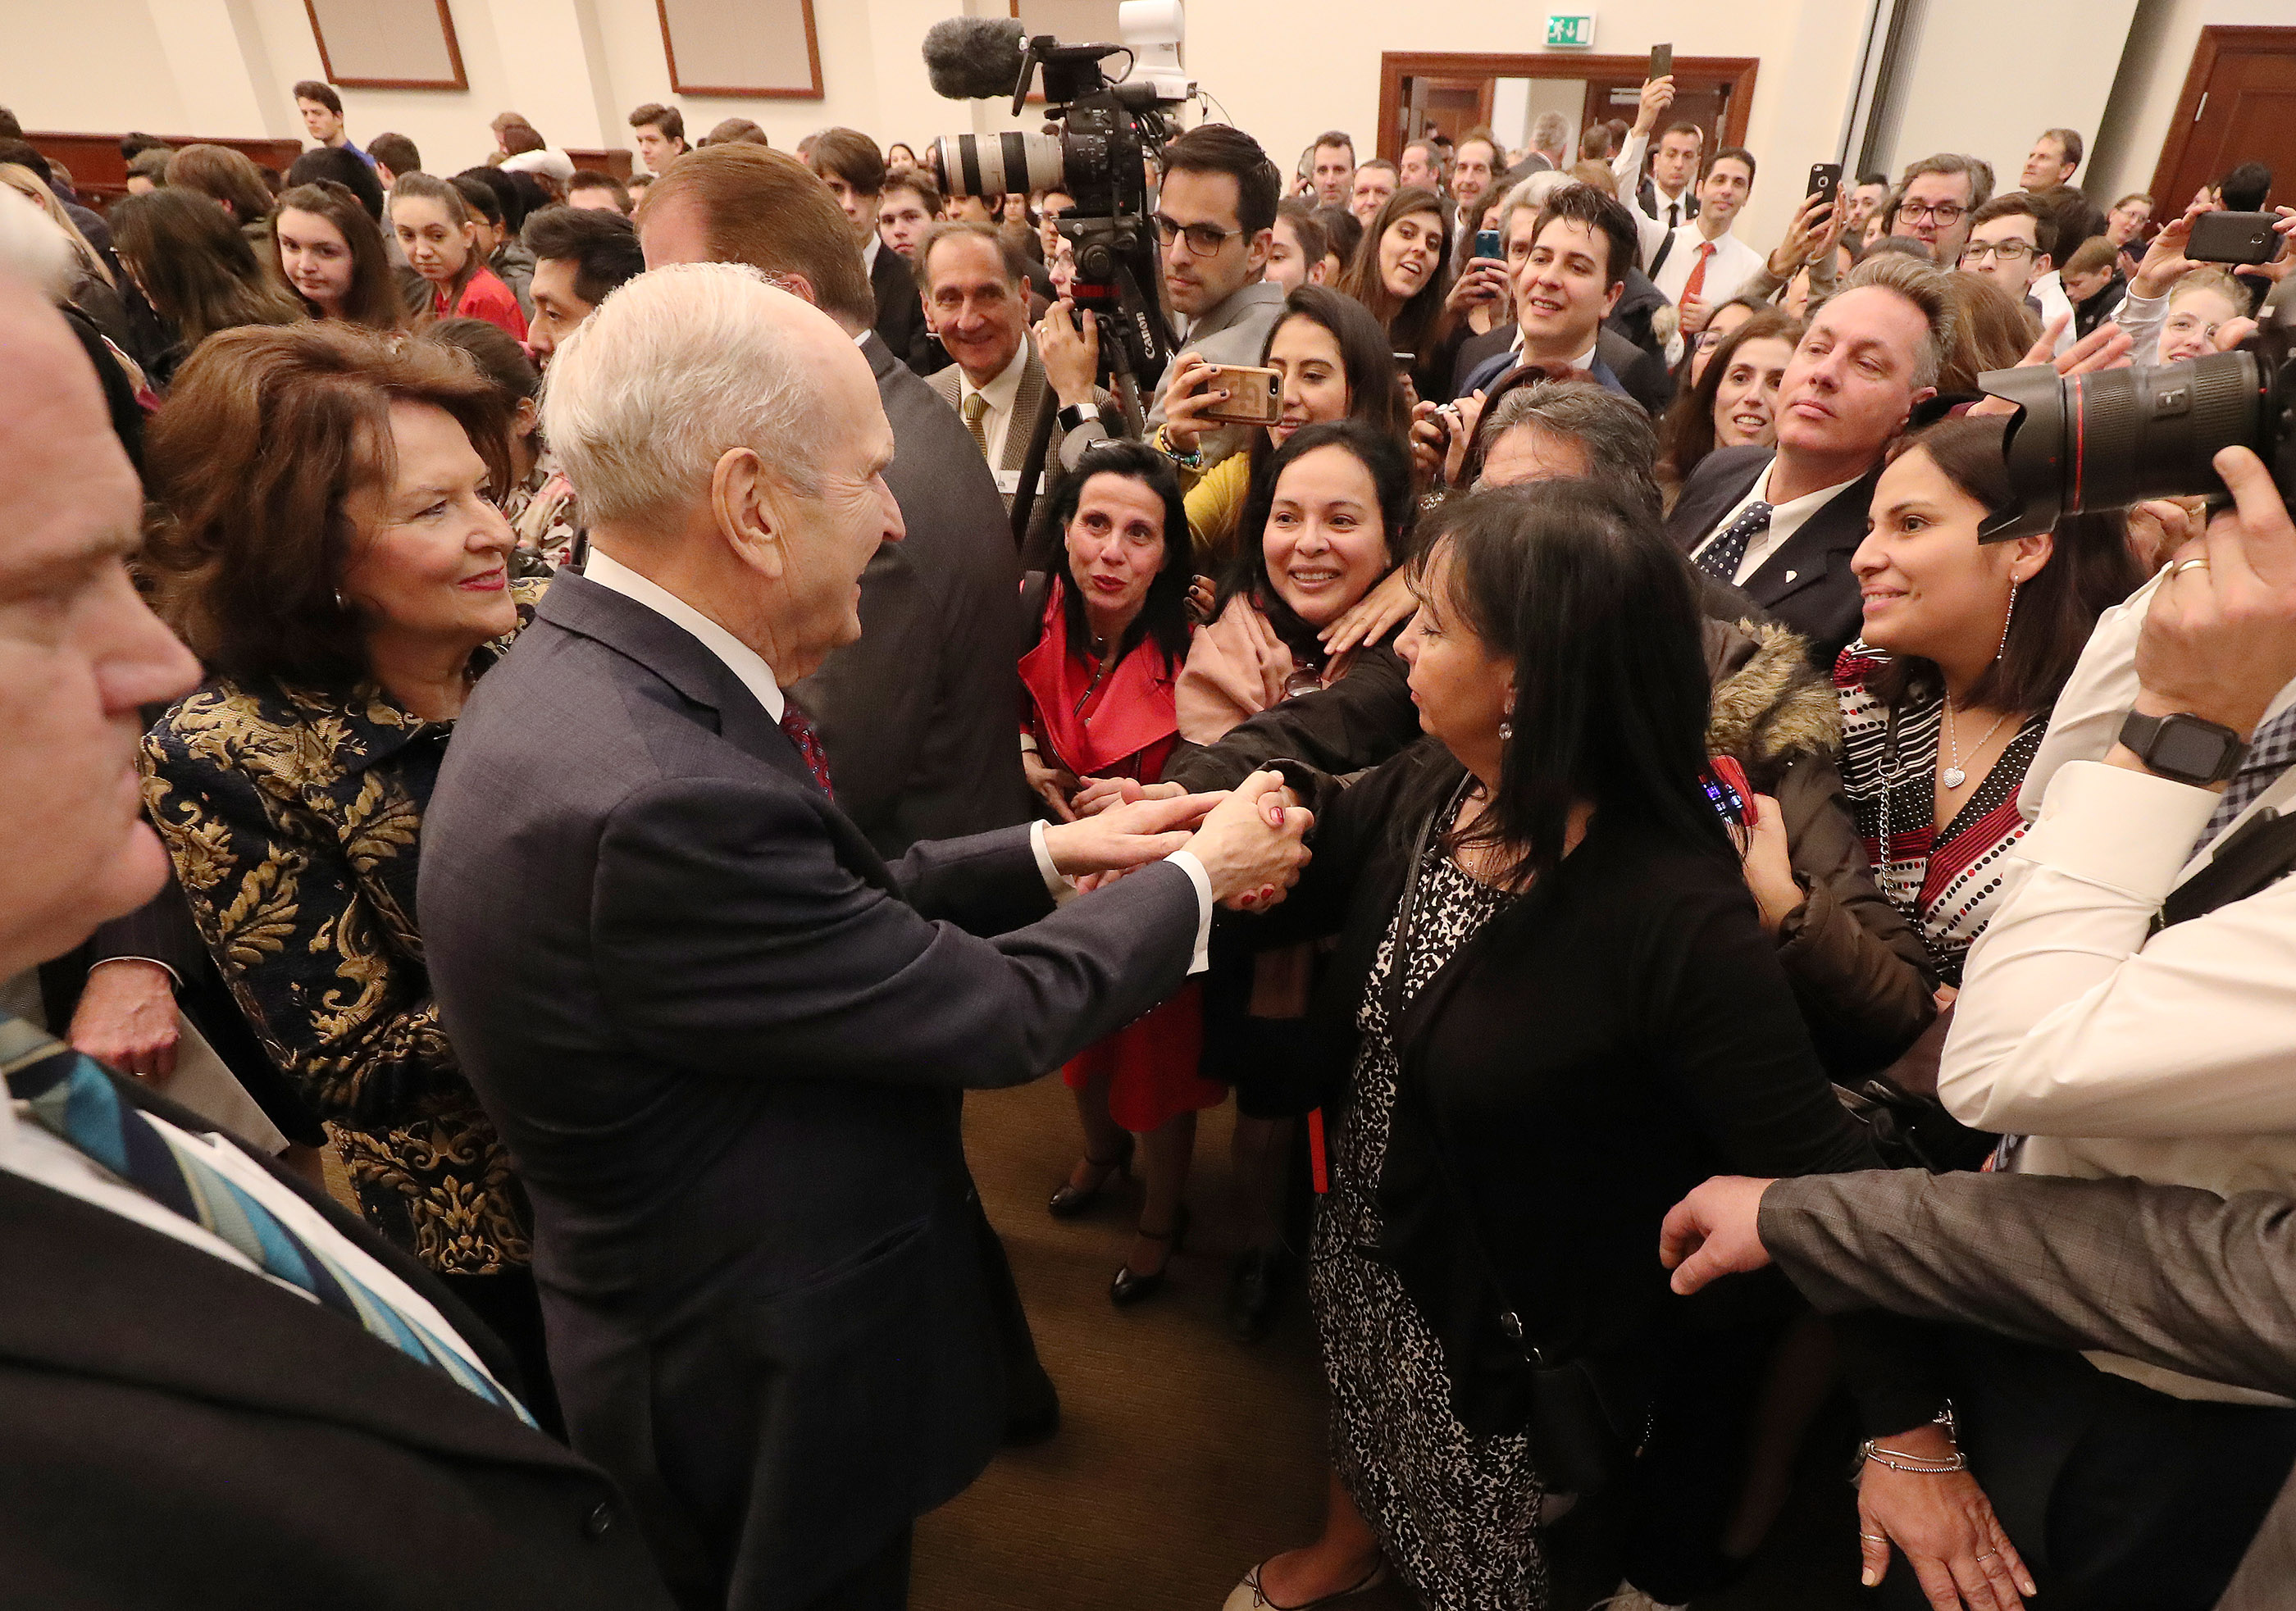 President Russell M. Nelson of The Church of Jesus Christ of Latter-day Saints and his wife, Sister Wendy Nelson, greet attendees after a youth devotional in Rome, Italy, on Saturday, March 9, 2019.